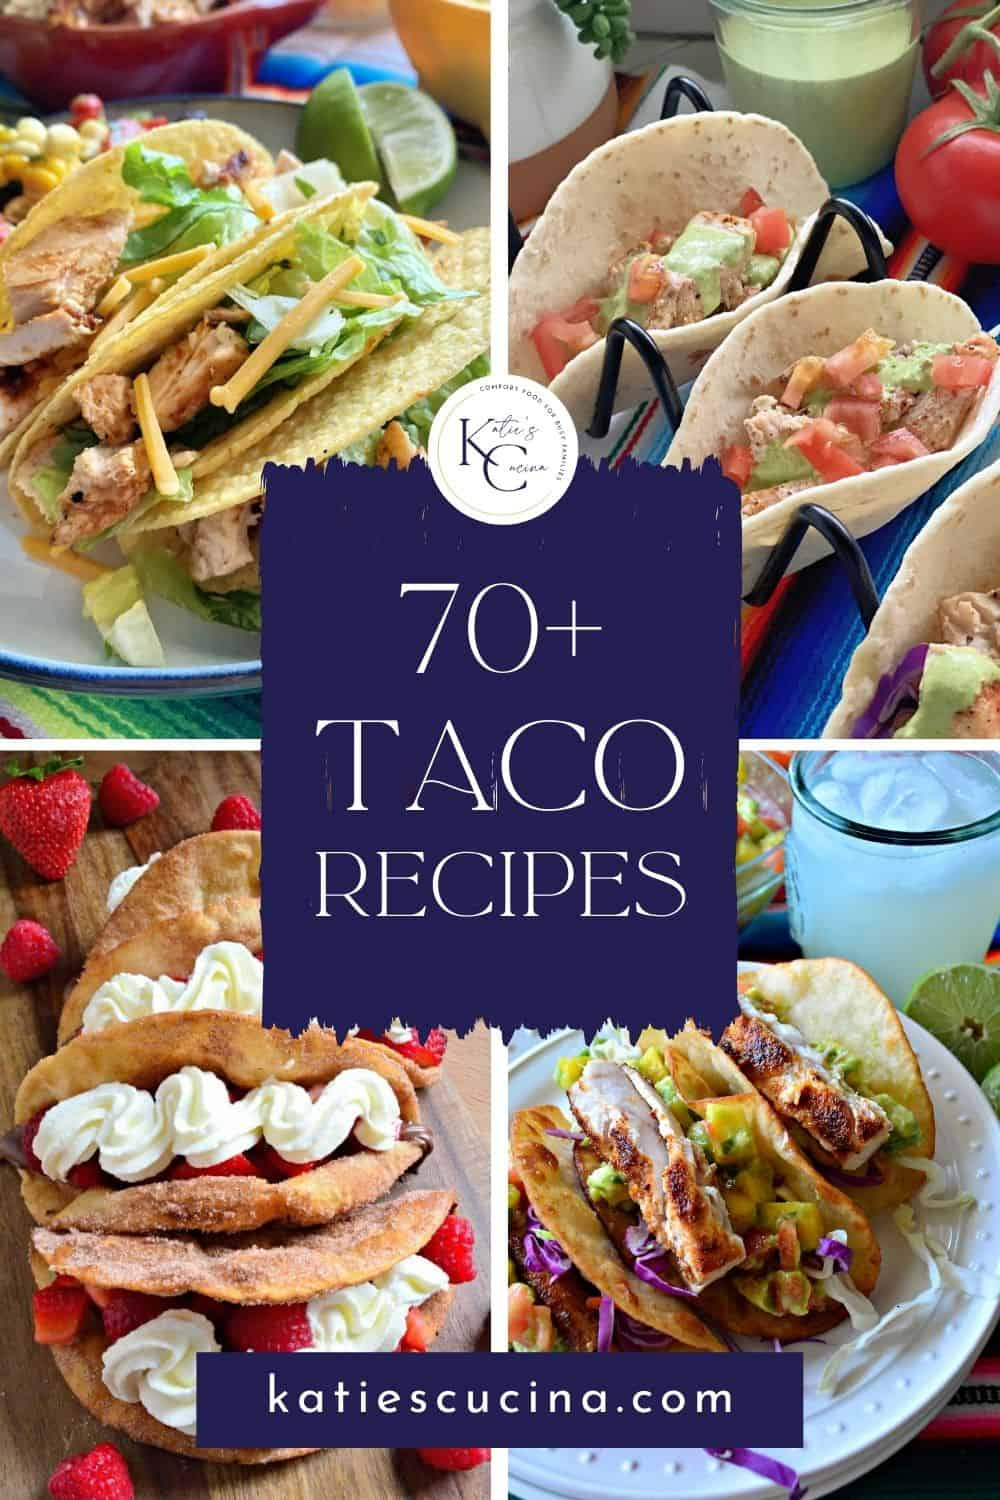 Four vertical photos of tacos on plates with recipe title text on image.